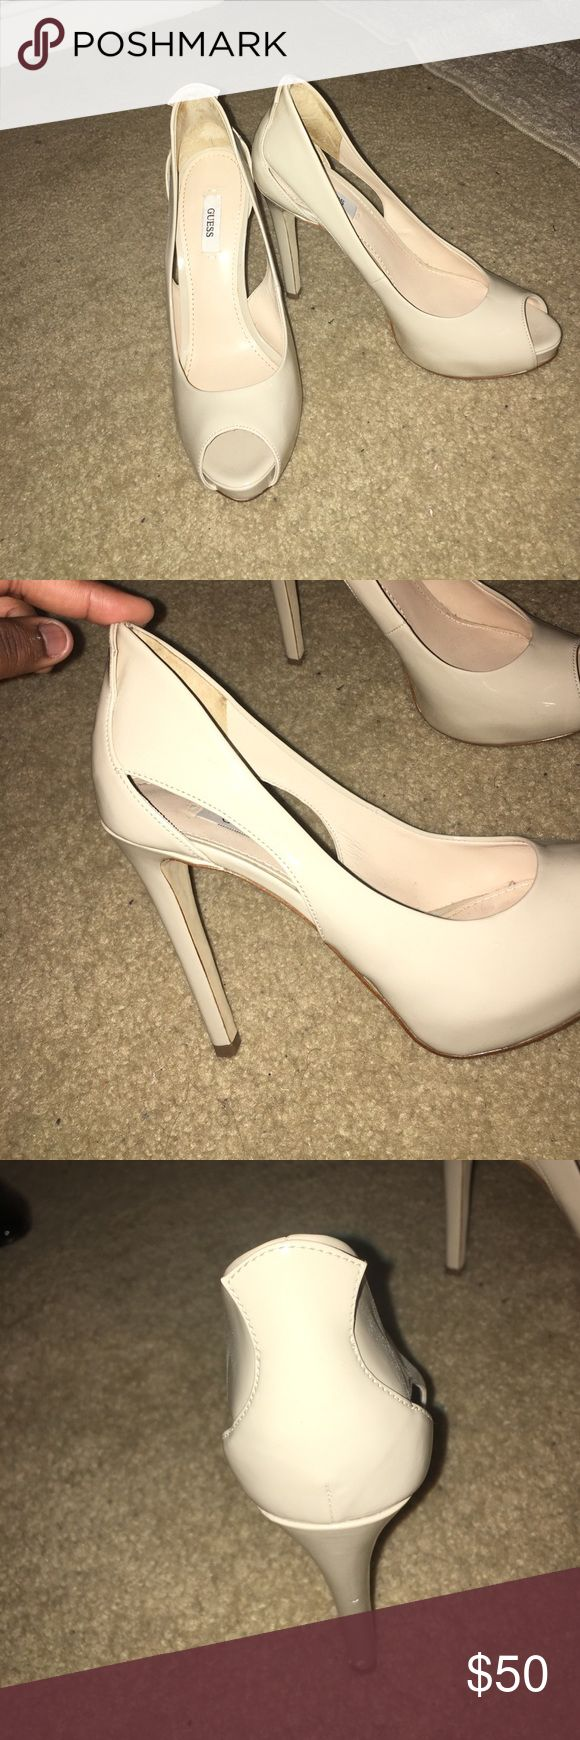 High Heeled Guess Shoes Worn once, minor scuff on the heel Guess Shoes Heels